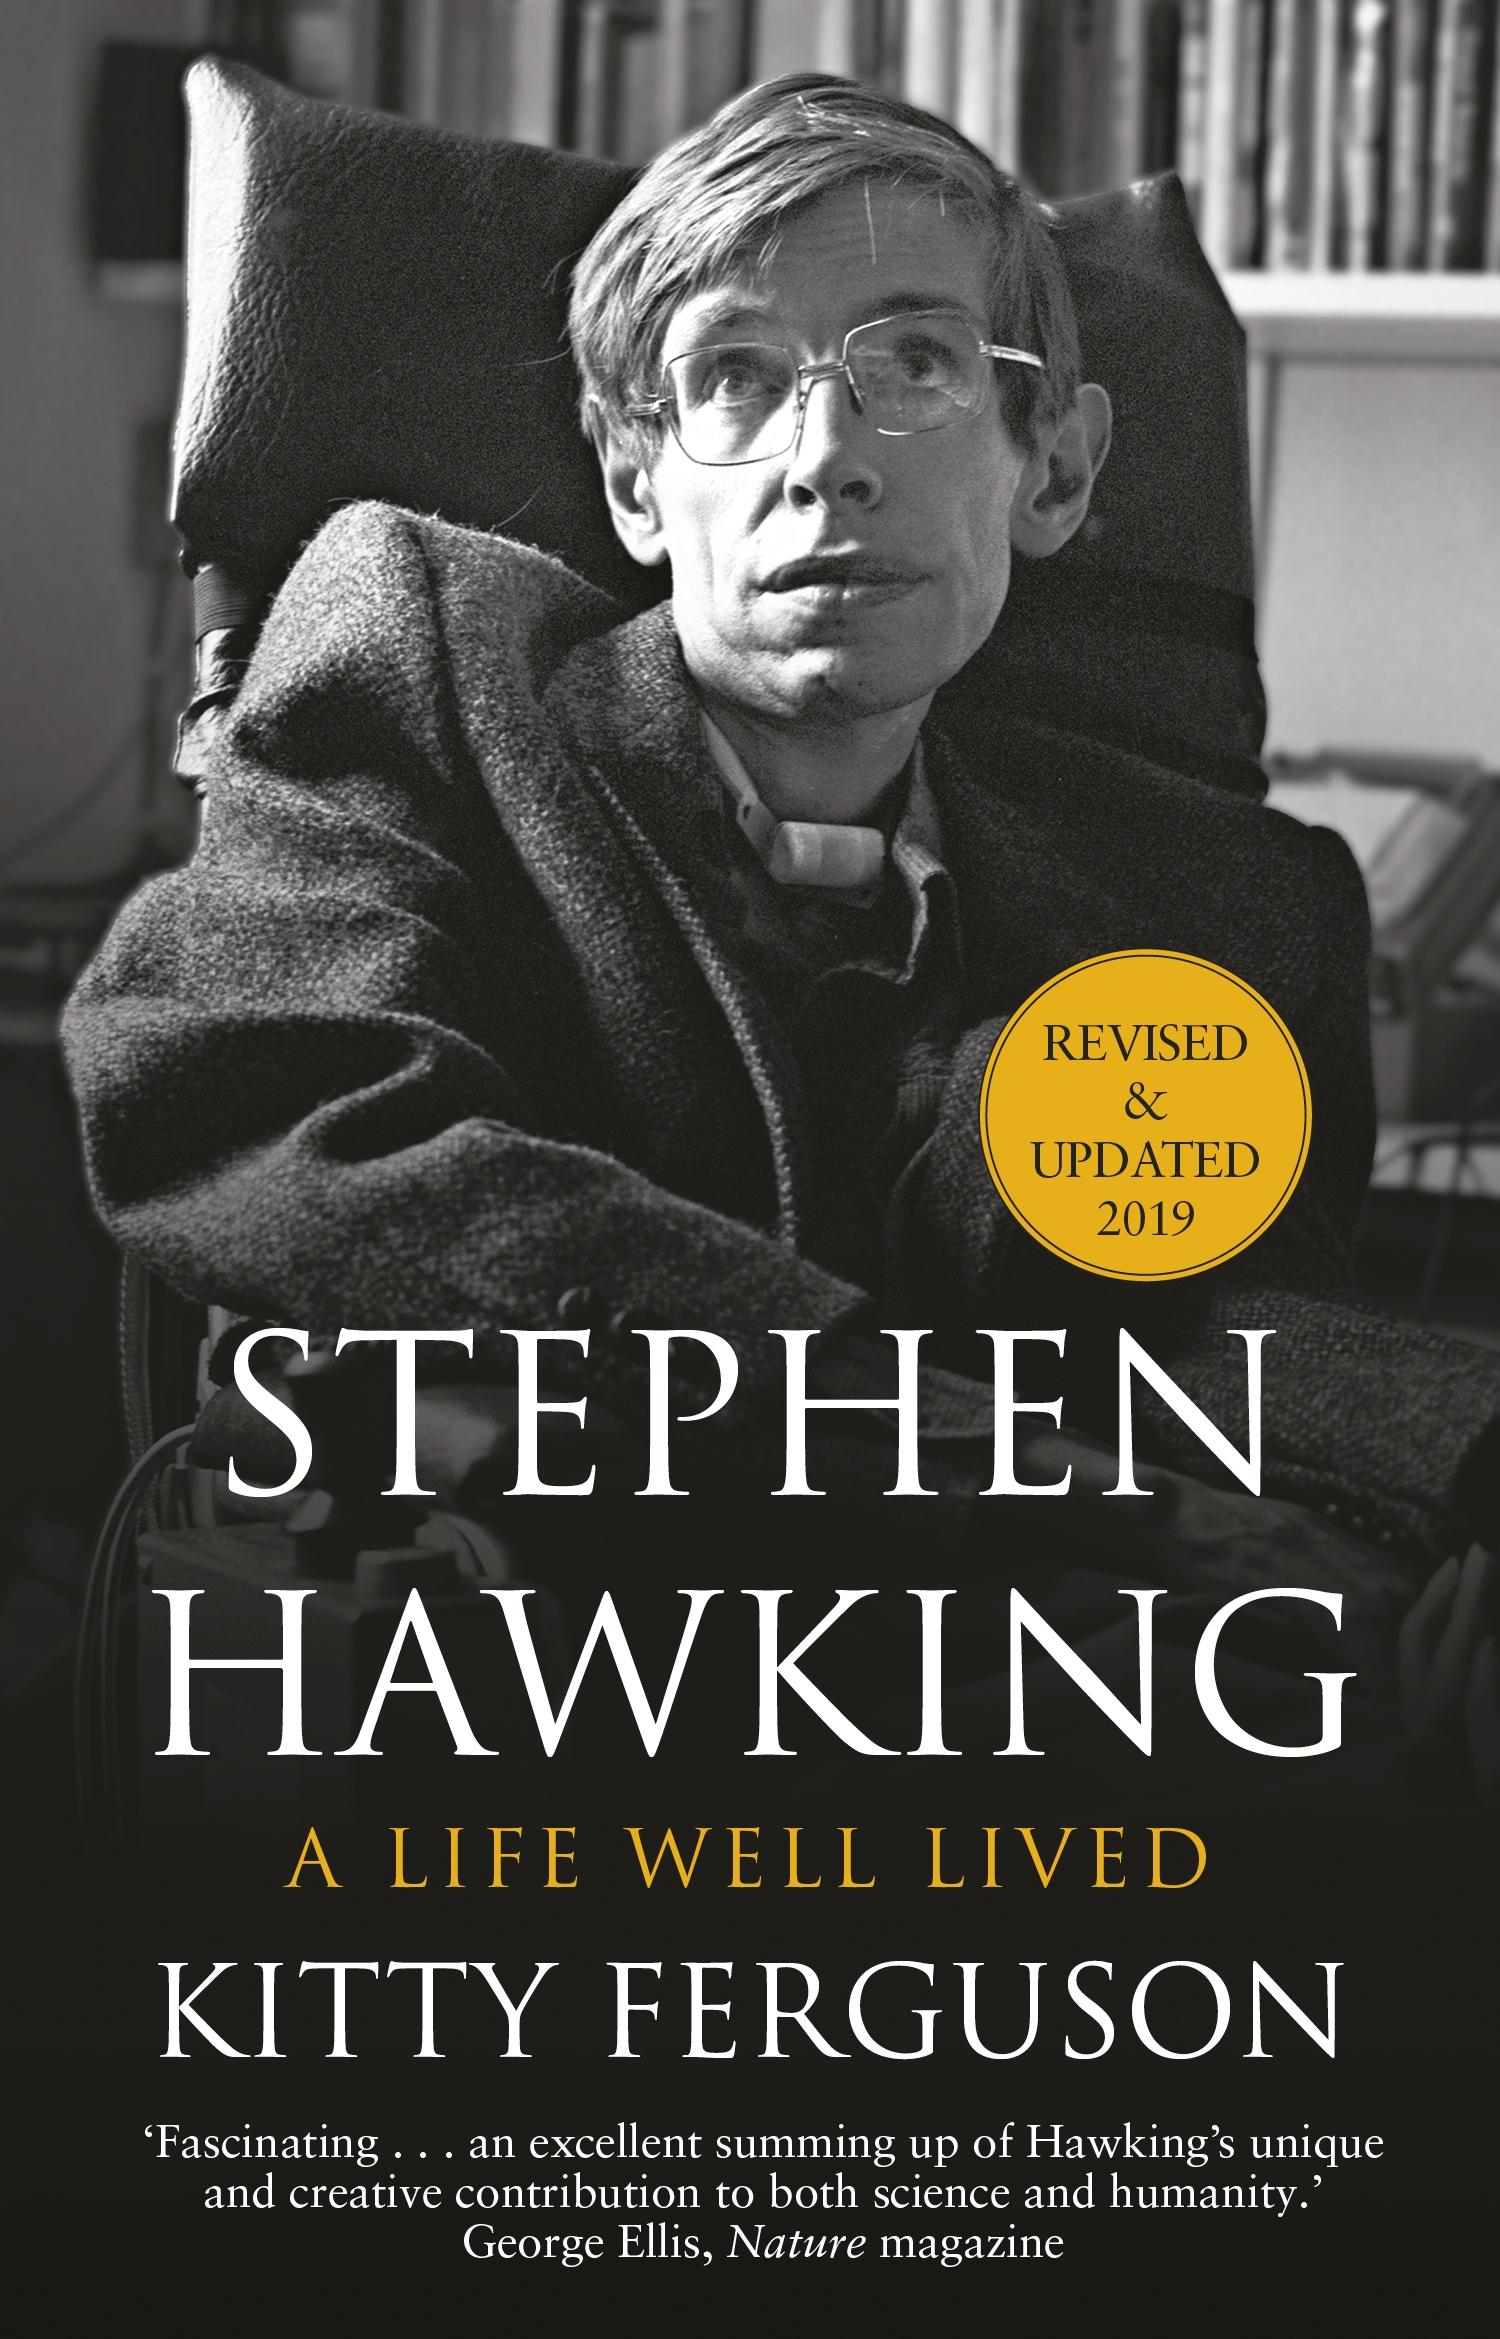 Stephen Hawking: A Life Well Lived by Kitty Ferguson